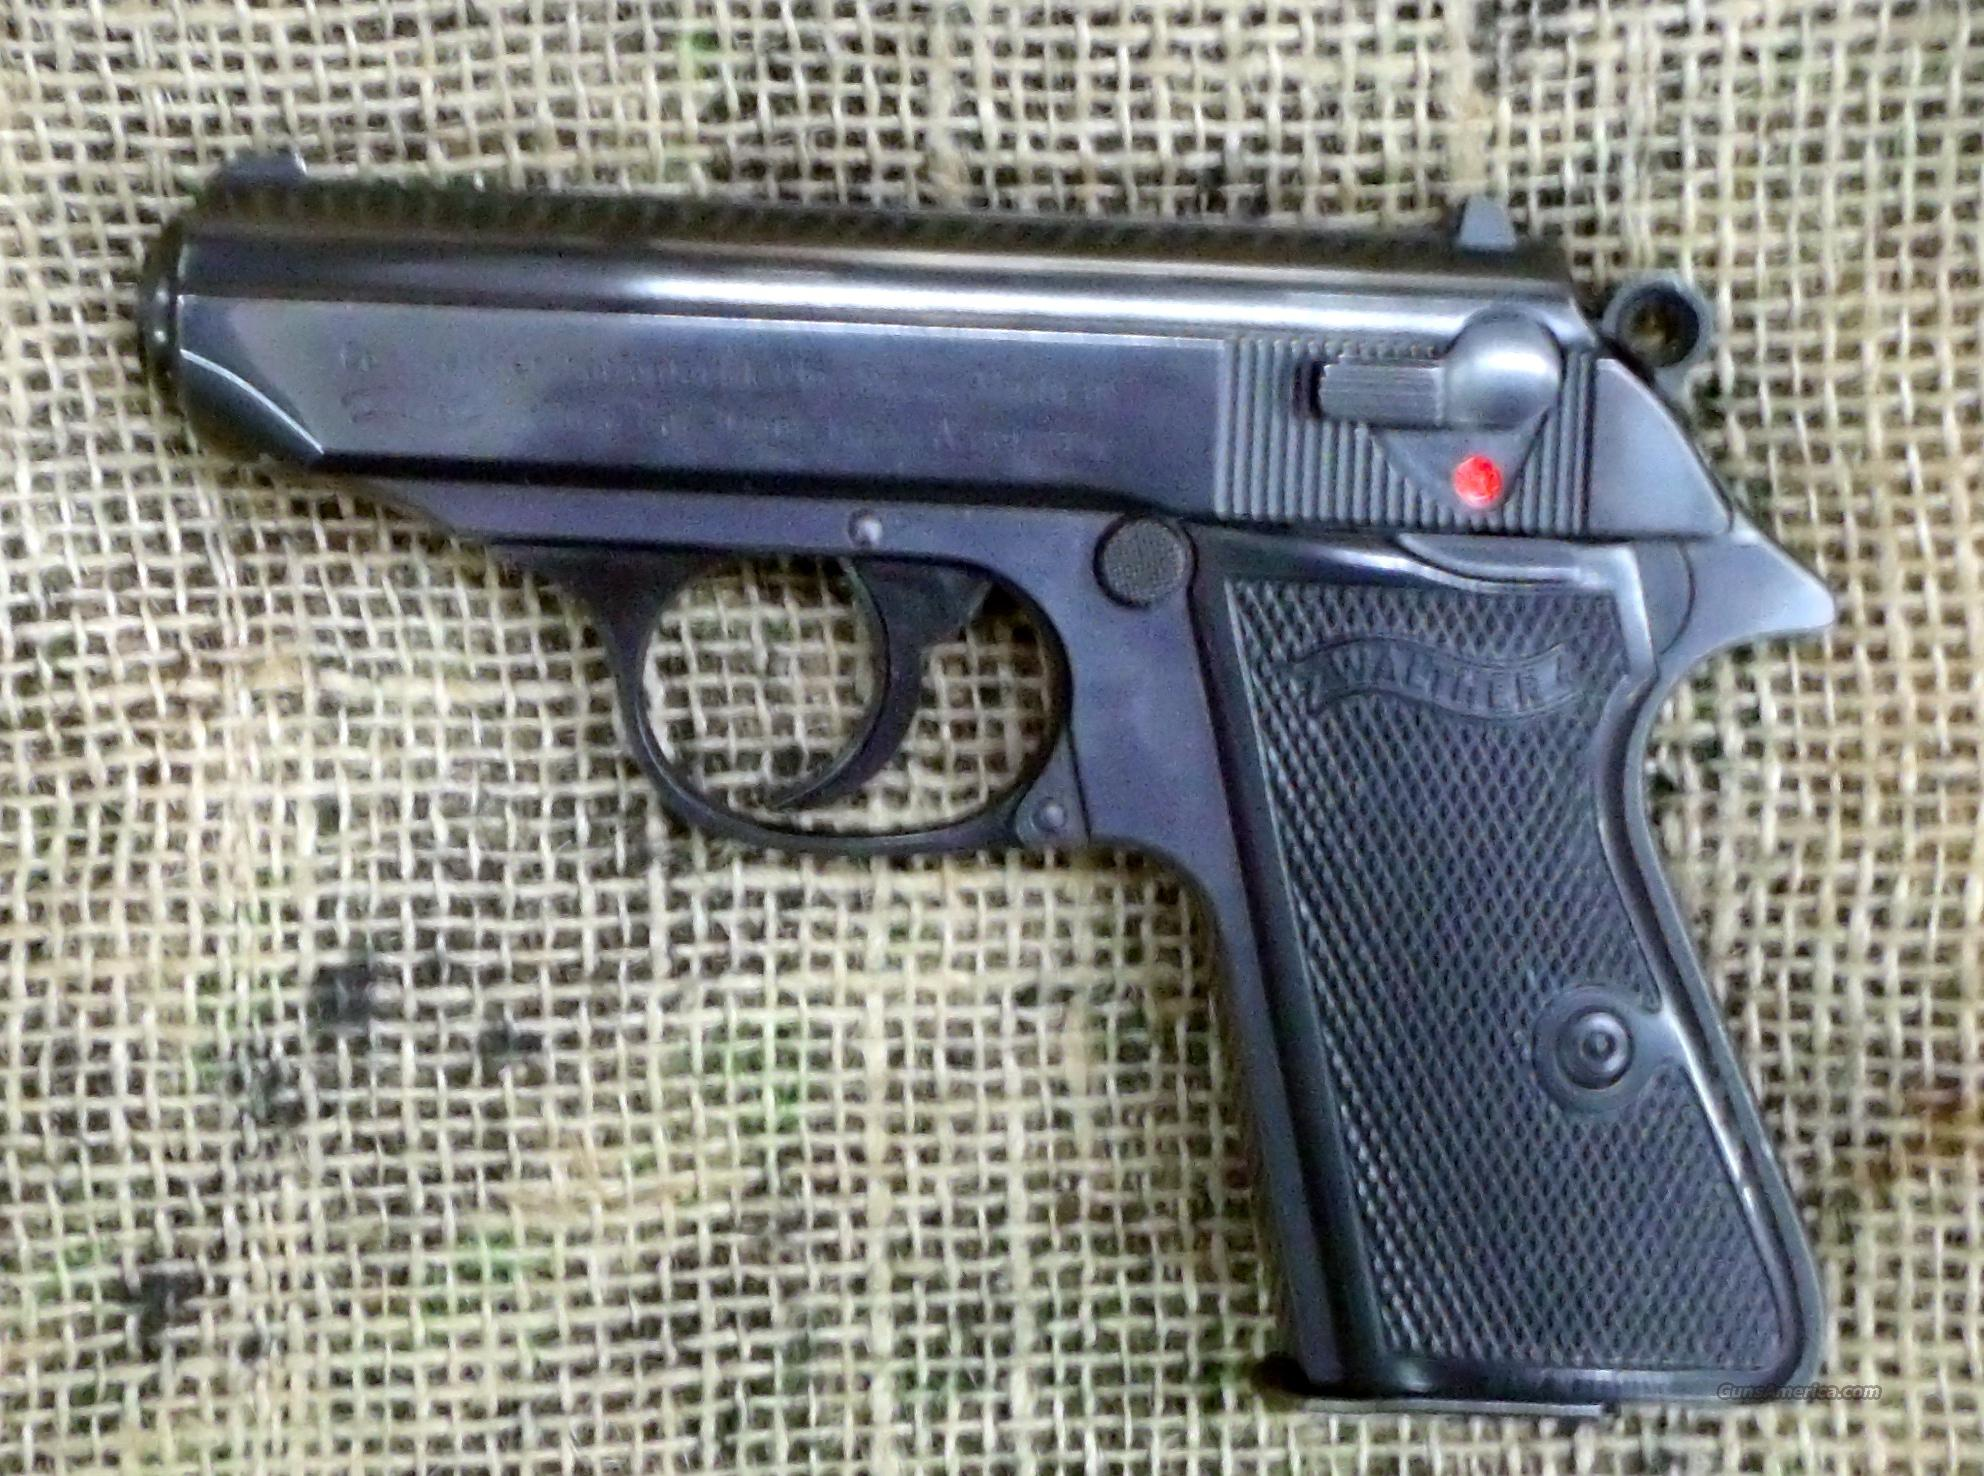 WALTHER Model PPK/S Pistol, 380ACP Cal.  Guns > Pistols > Walther Pistols > Post WWII > PPK Series